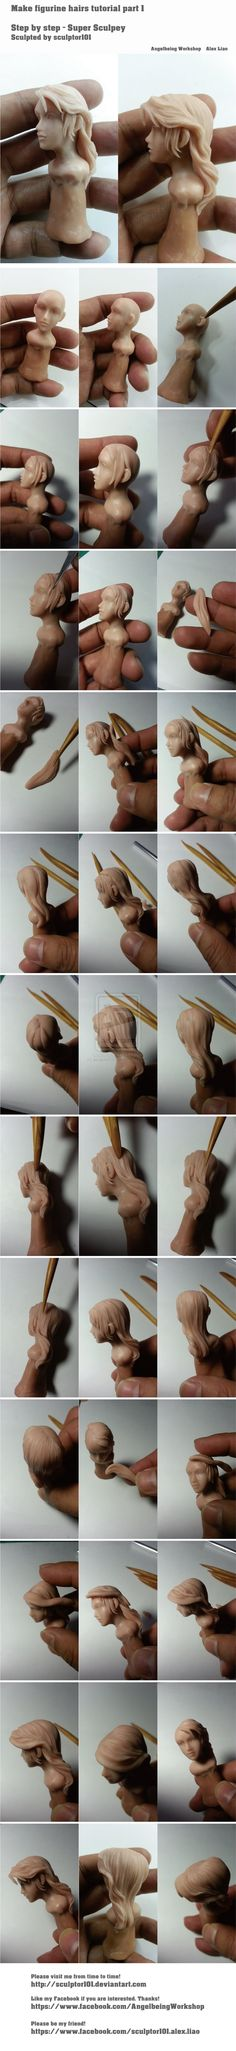 Making figurine hairs tutorial part 1 by sculptor101.deviantart.com